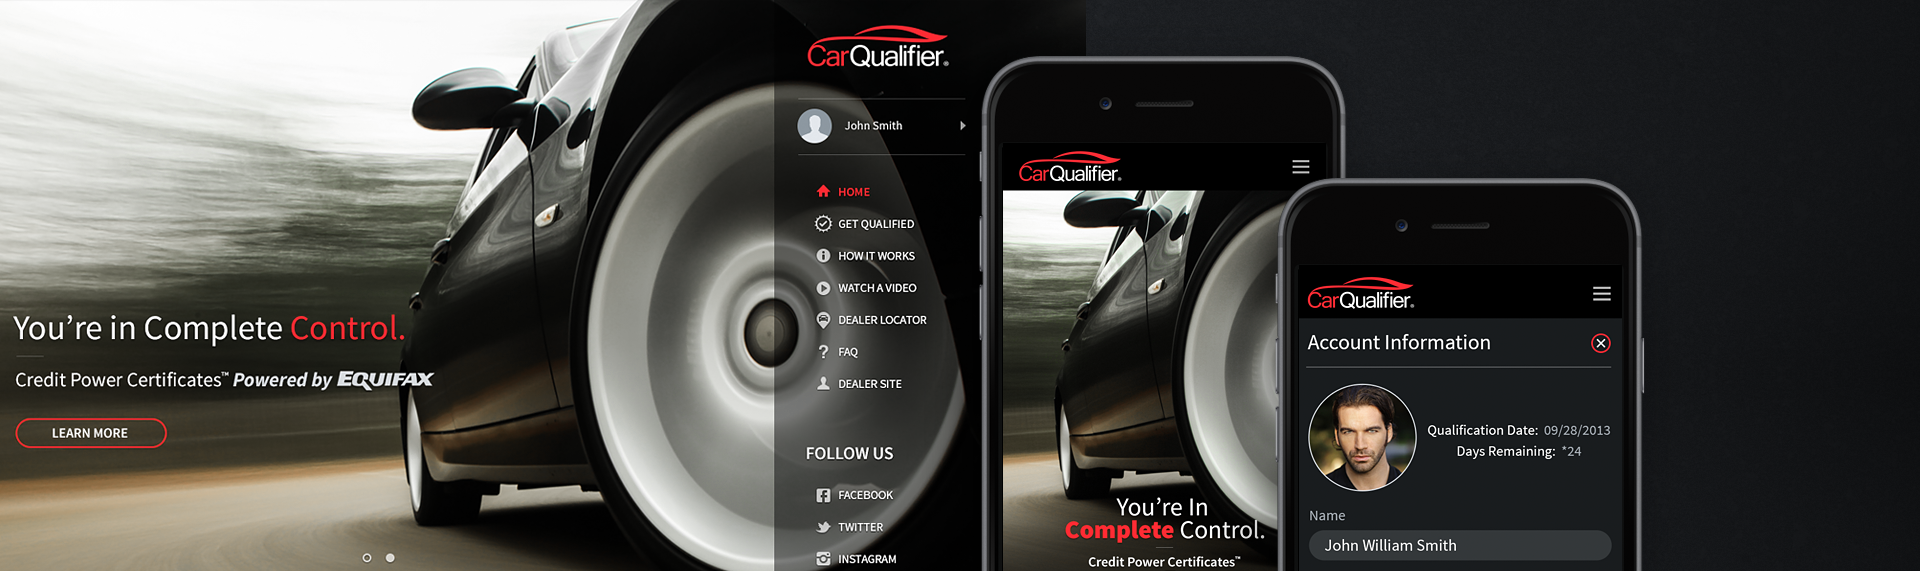 CarQualifier  Browser + Mobile Application UX & UI Design  CarQualifier brought in The Skins Factory to design the UX & UI for their world-class consumer mobile & browser application. CarQualifier prequalifies consumers for new vehicle loans & leases at the beginning of the sales process. Our team started the project designing the browser application's interaction and visual design, then ported the design over to a mobile phone platform. The results are a perfect visual symmetry. Over 100 screens were designed.